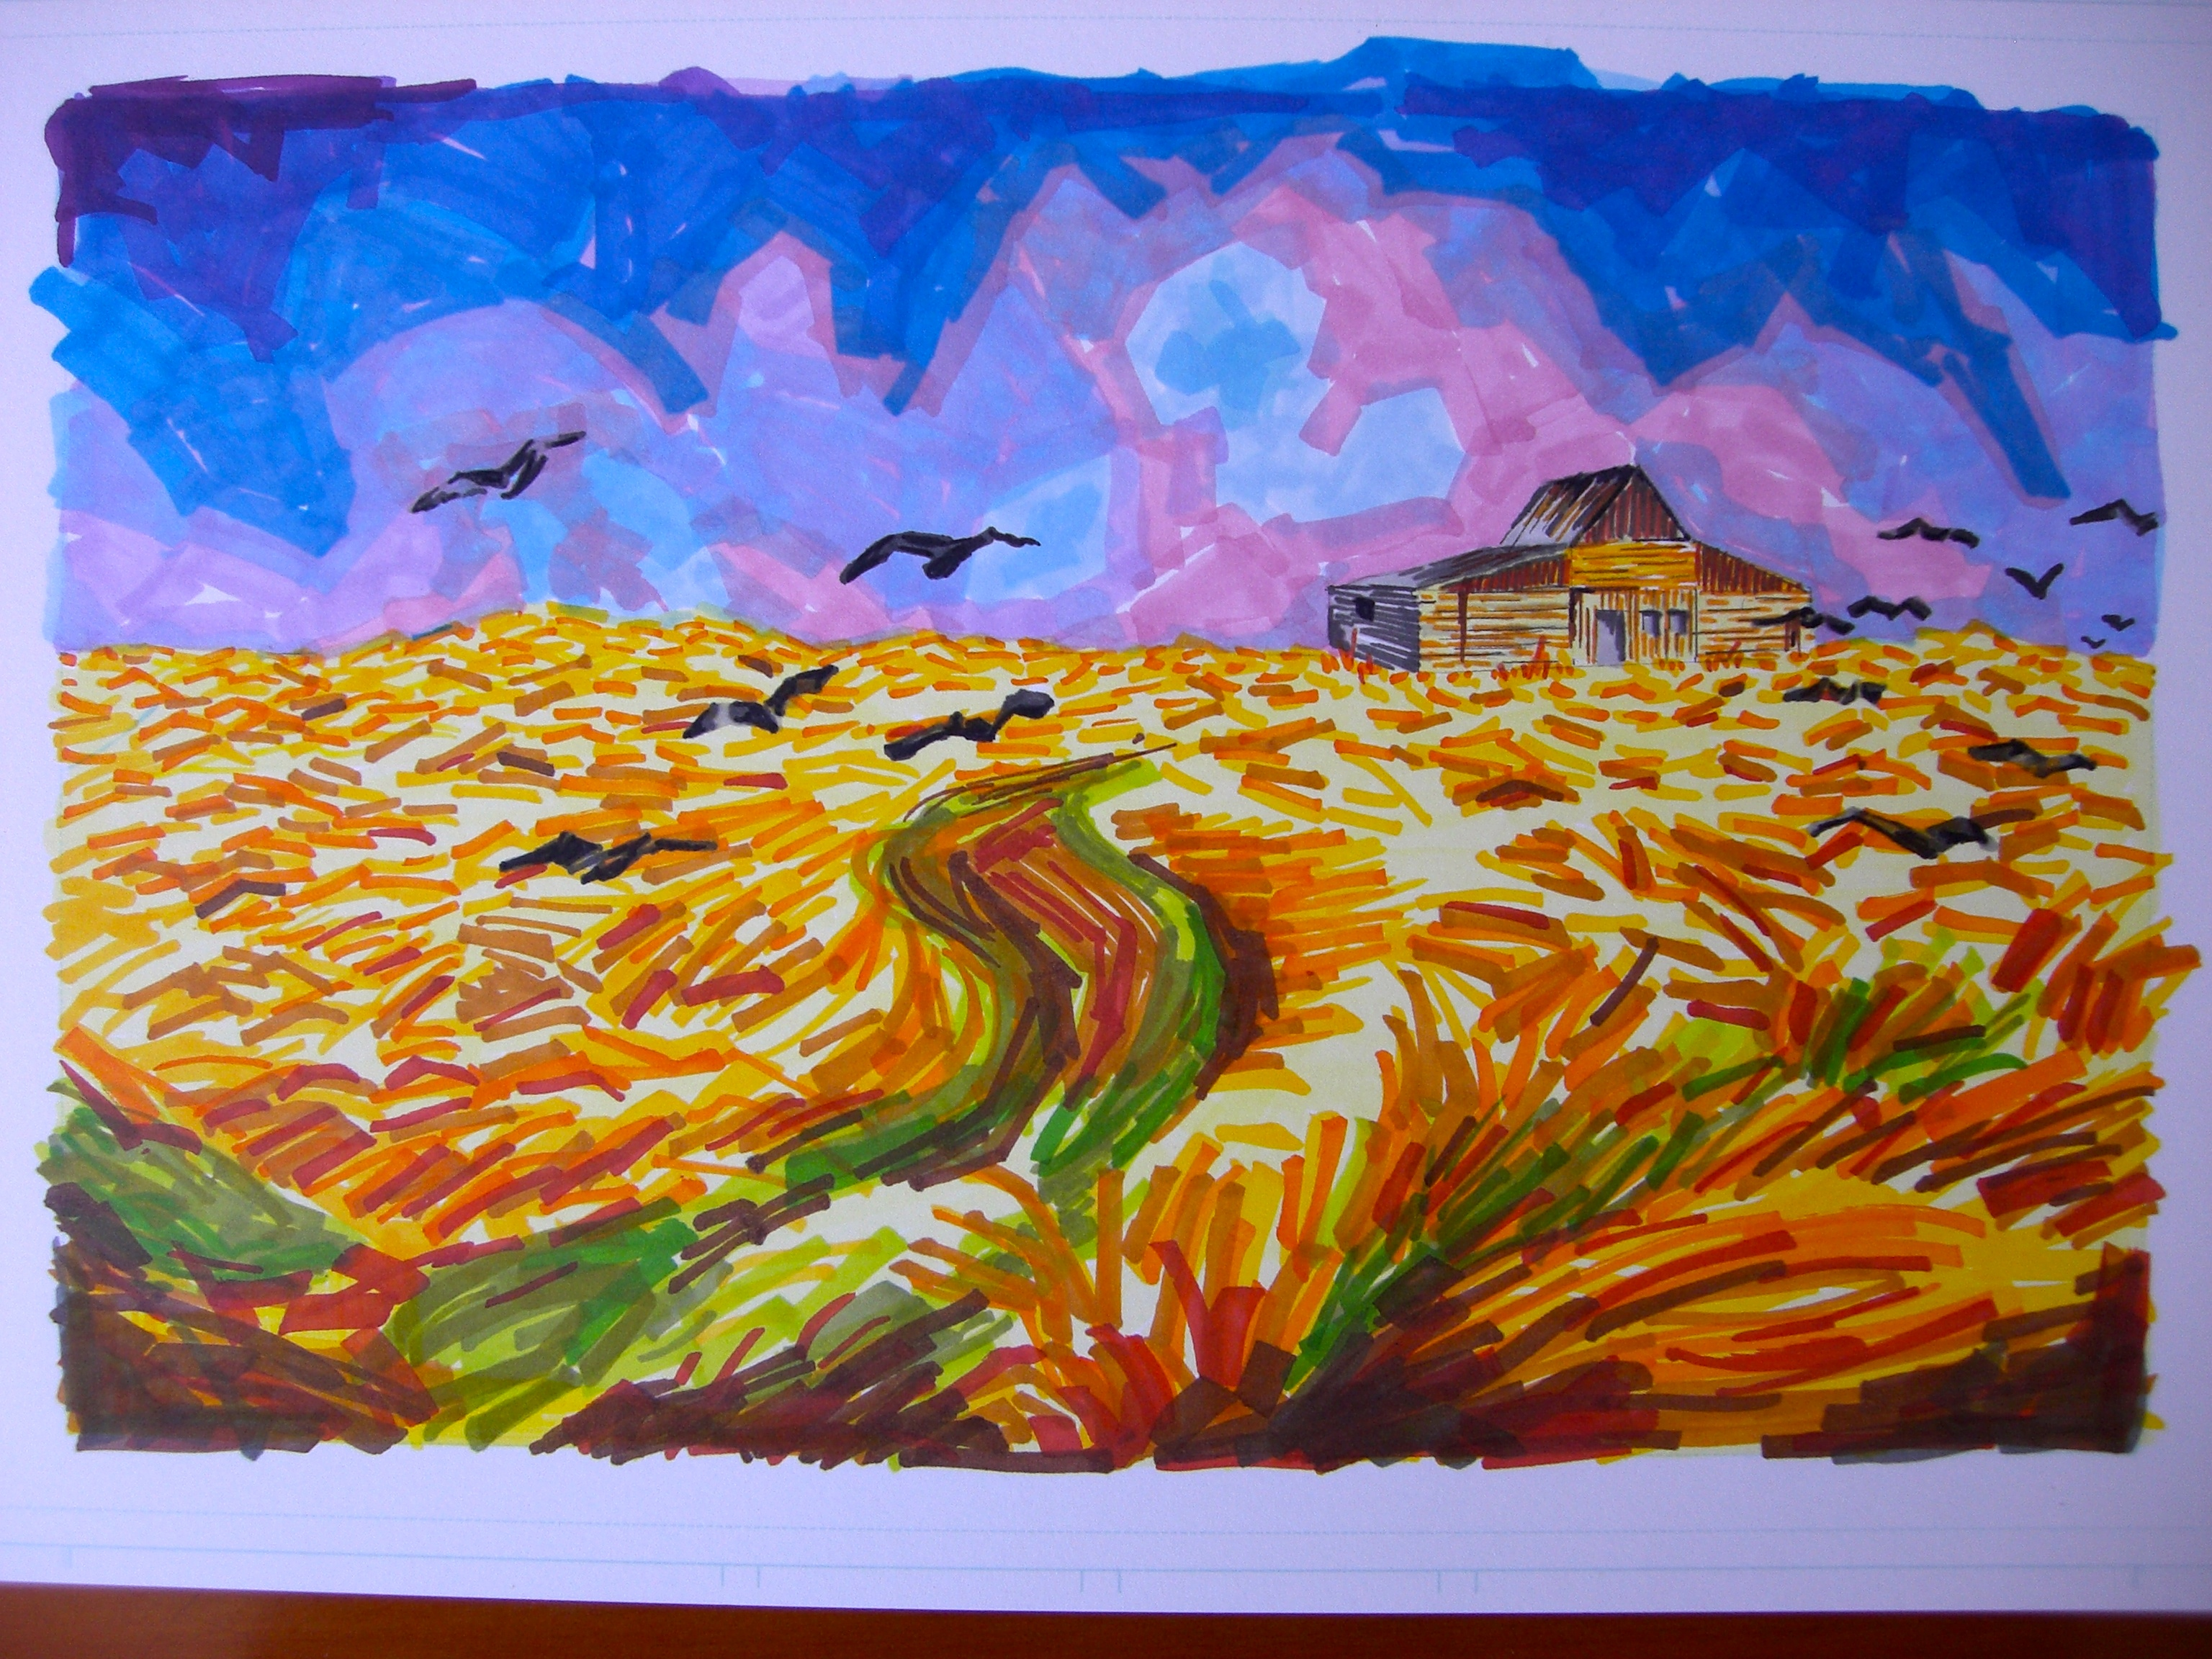 How Vincent would paint Elsbeth's cabin in the wheat field if he had magic markers